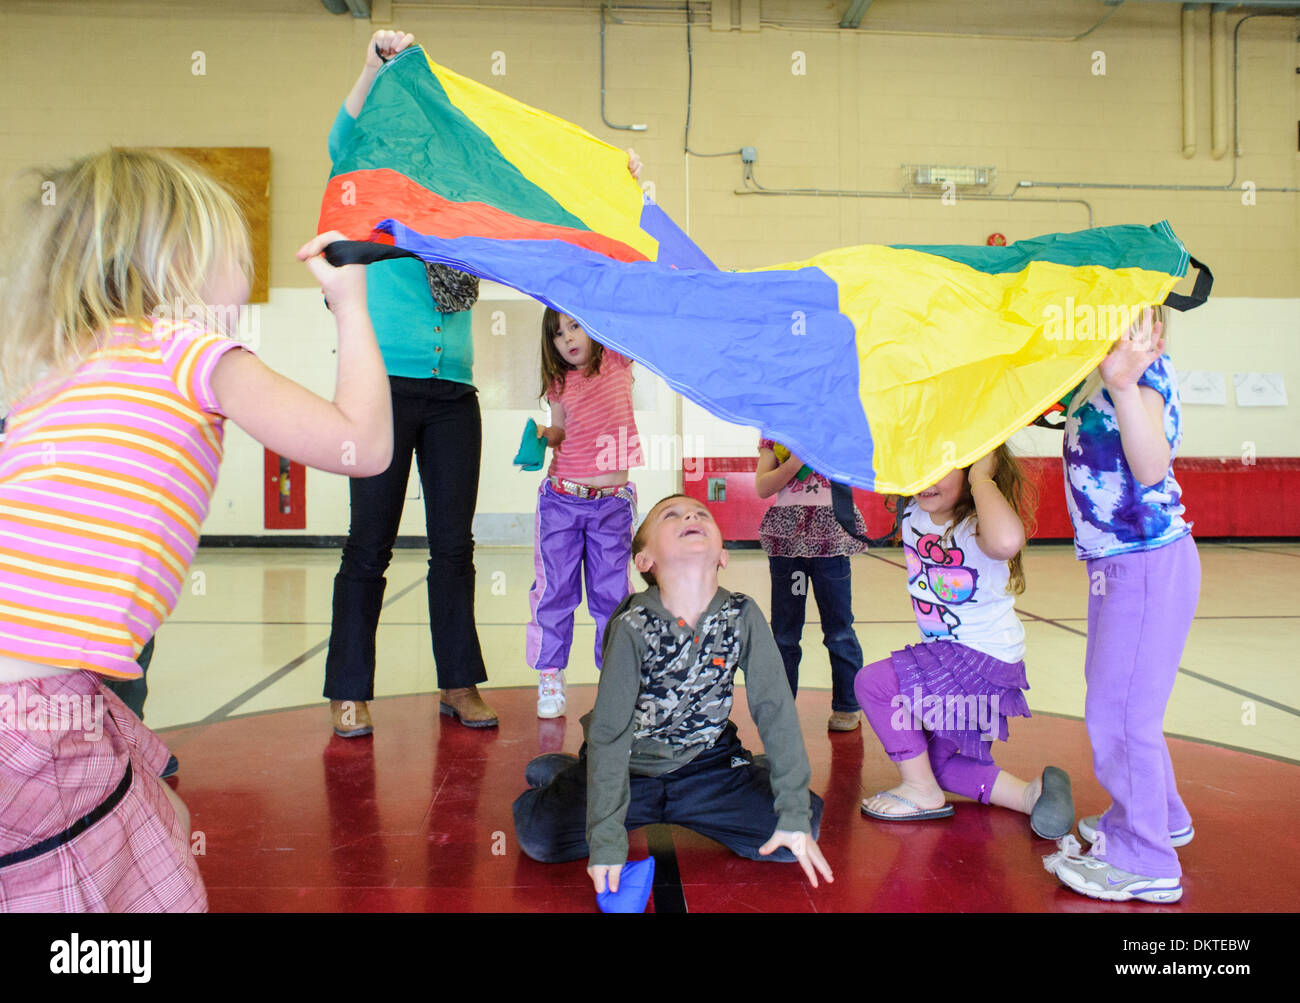 Pre-school children playing with rainbow parachute in gym - Stock Image